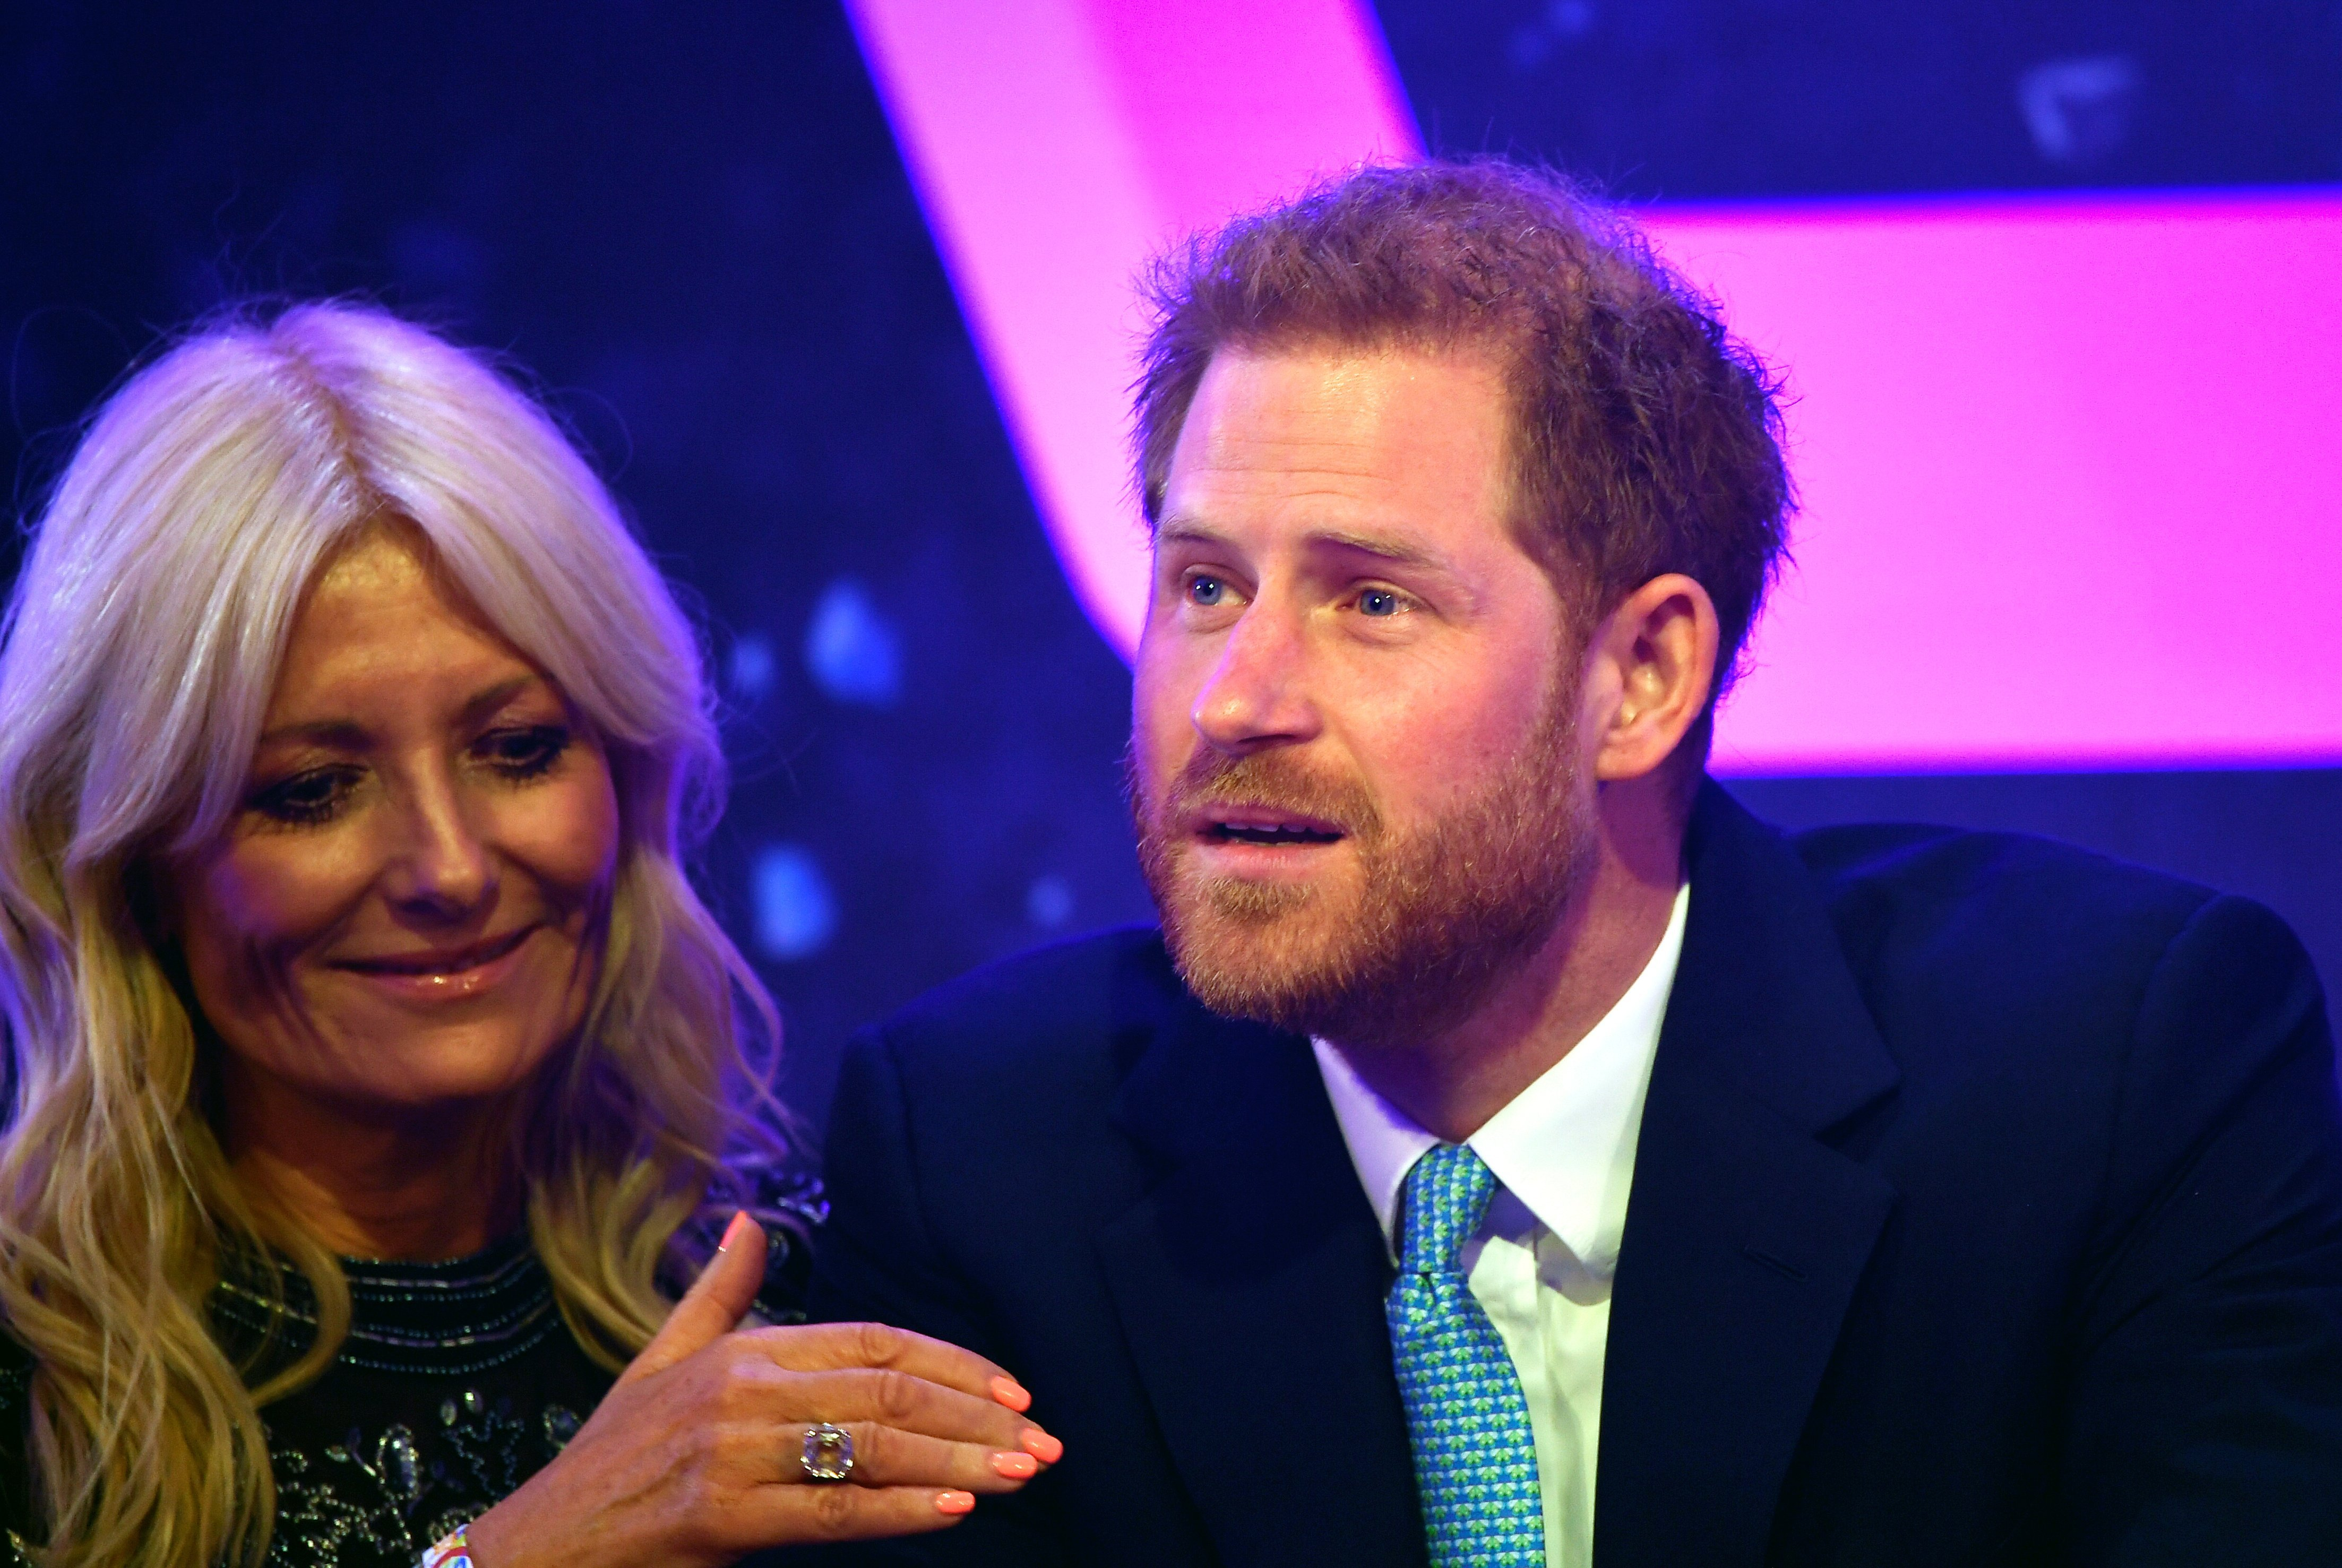 Prince Harry, Duke of Sussex reacts next to television presenter Gaby Roslin as he delivers a speech during the WellChild awards at Royal Lancaster Hotel on October 15, 2019 in London, England | Photo: Getty Images